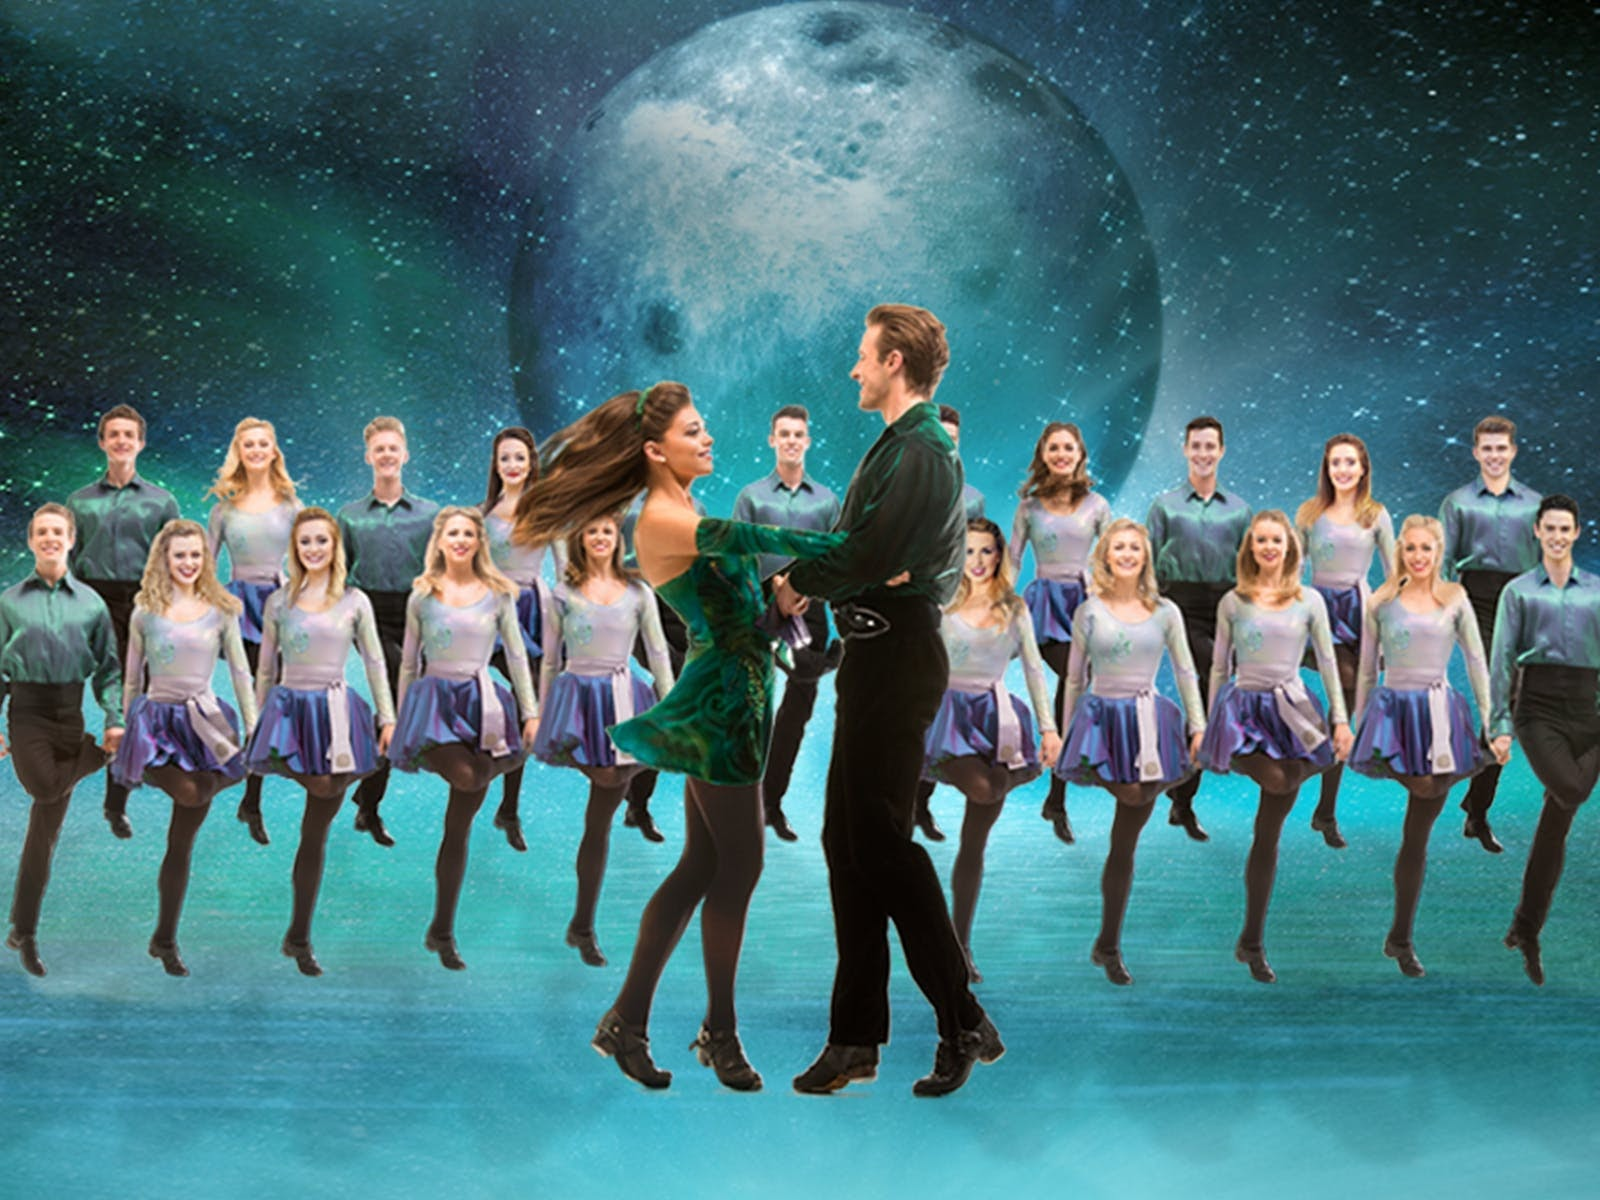 Cast of dancers who perform in Riverdance